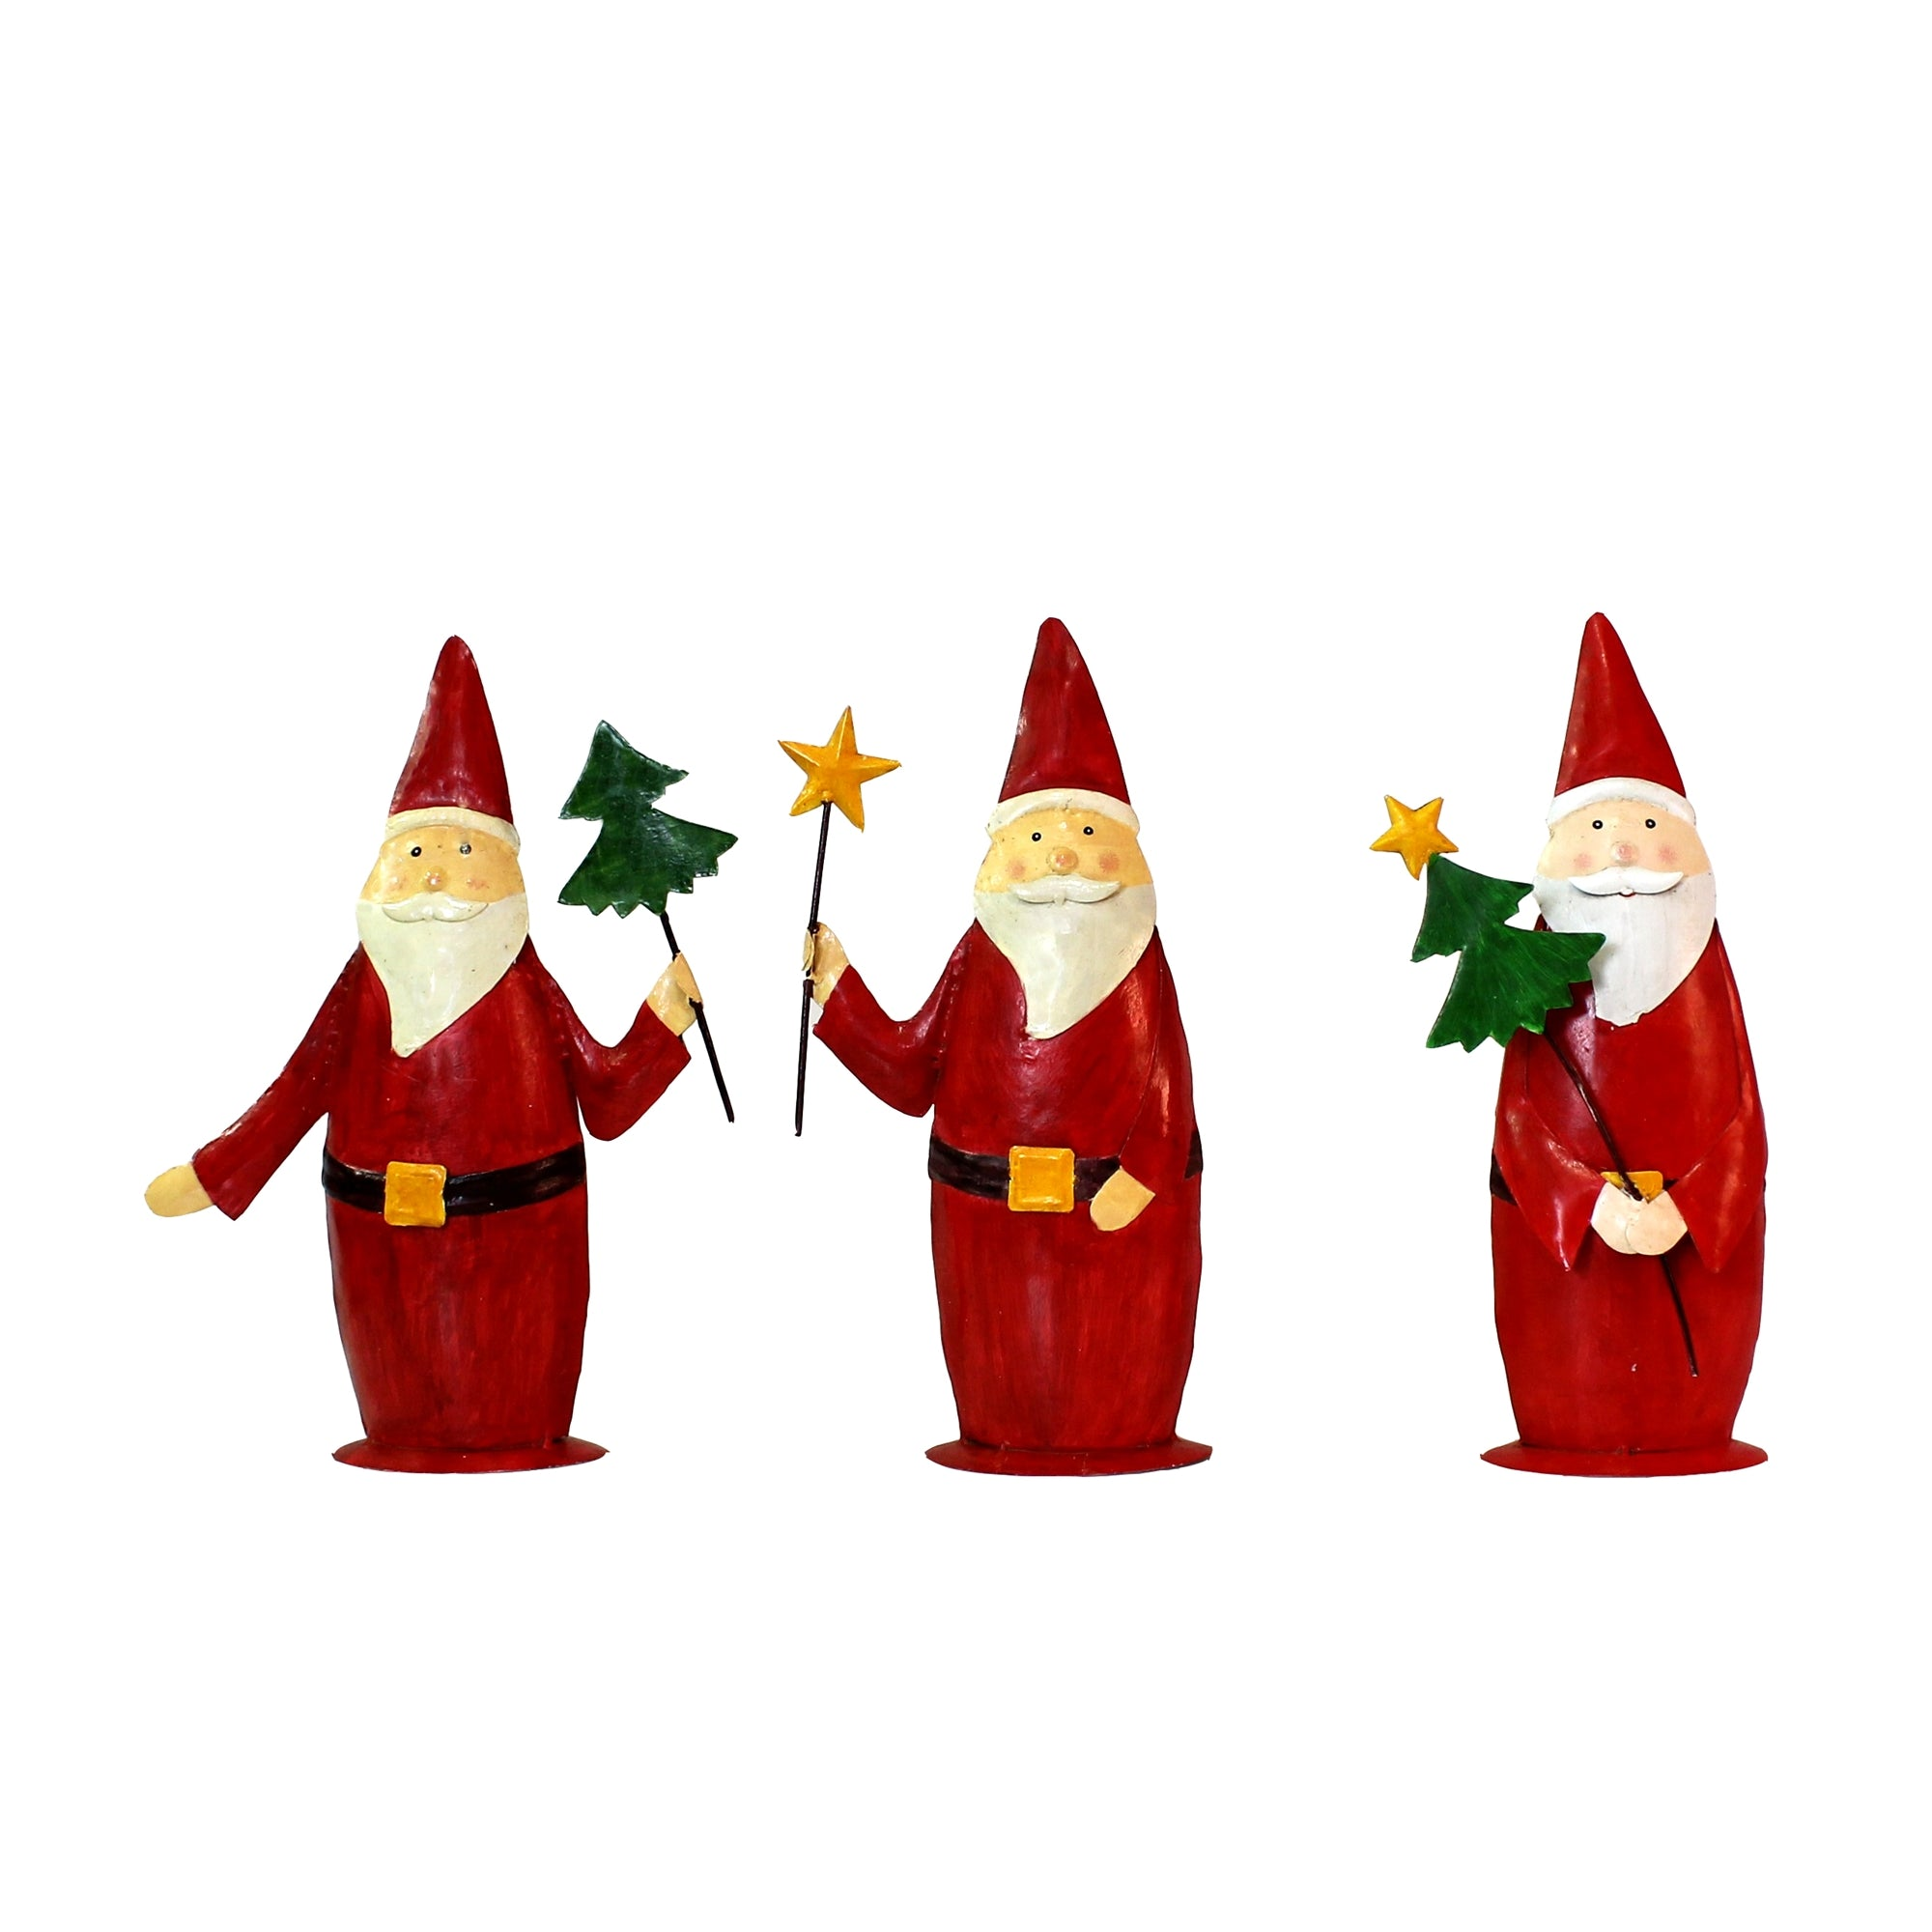 Painted Metal Santa Trio Large - Set of 3 - CARLYLE AVENUE